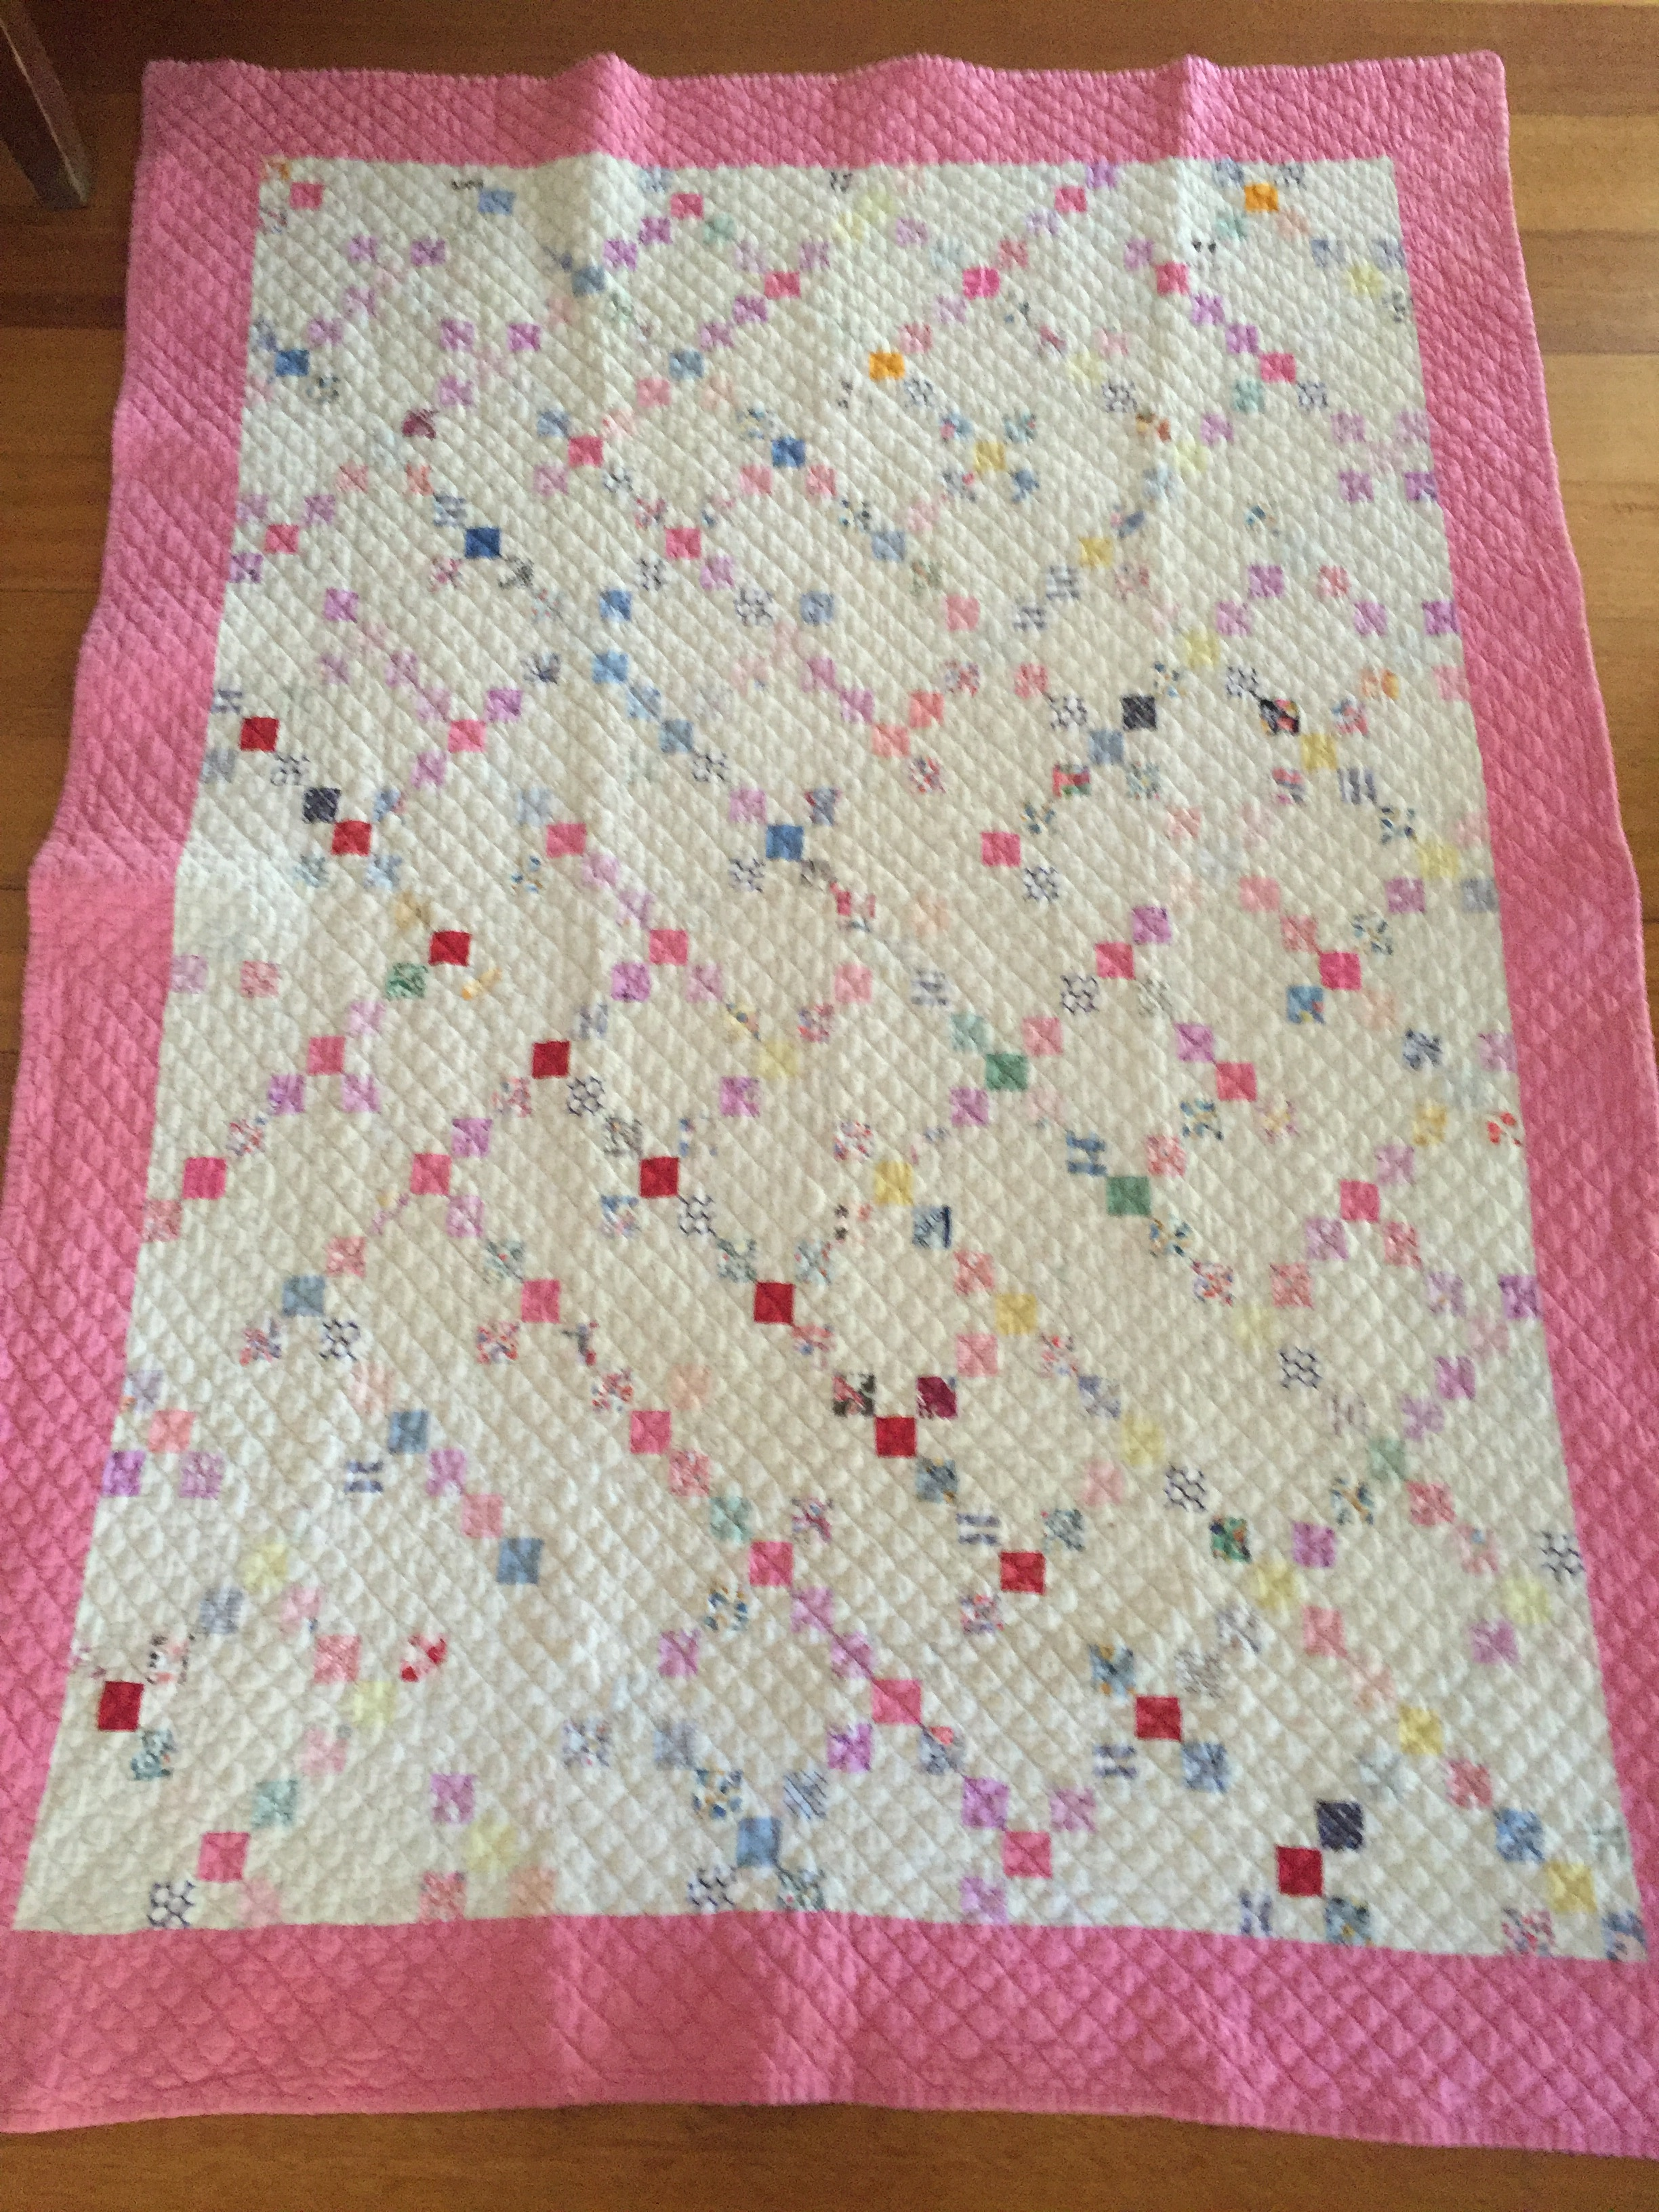 quilt b smith s quilts quilter chelmsford cqg rafflequilt guild raffle